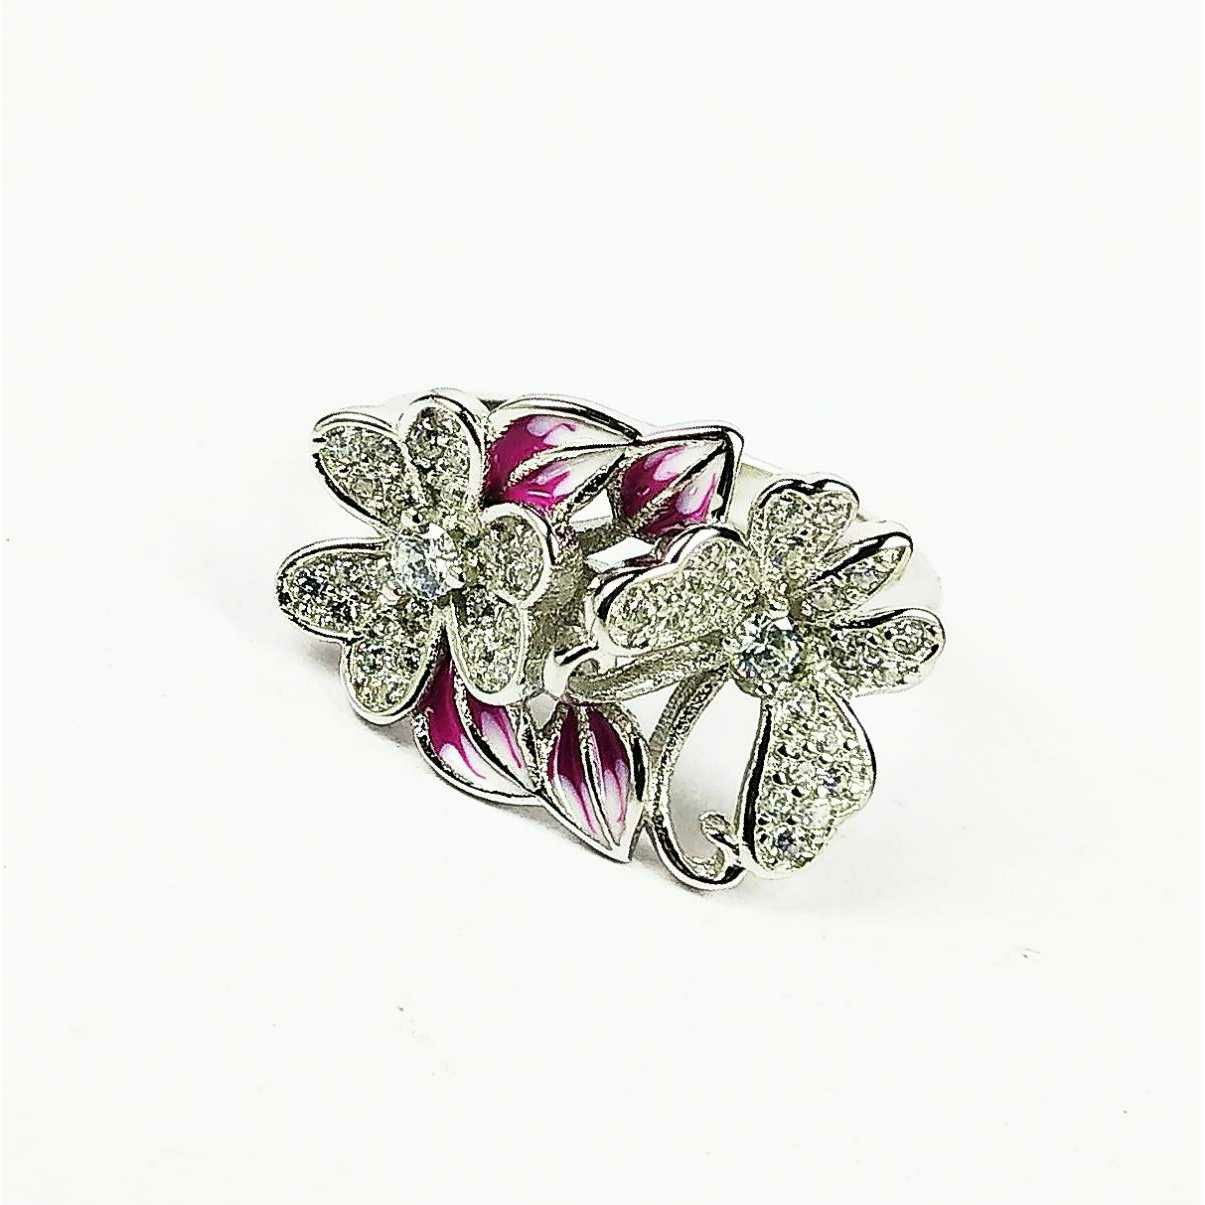 Designer 925 silver ladies rings with two flowers